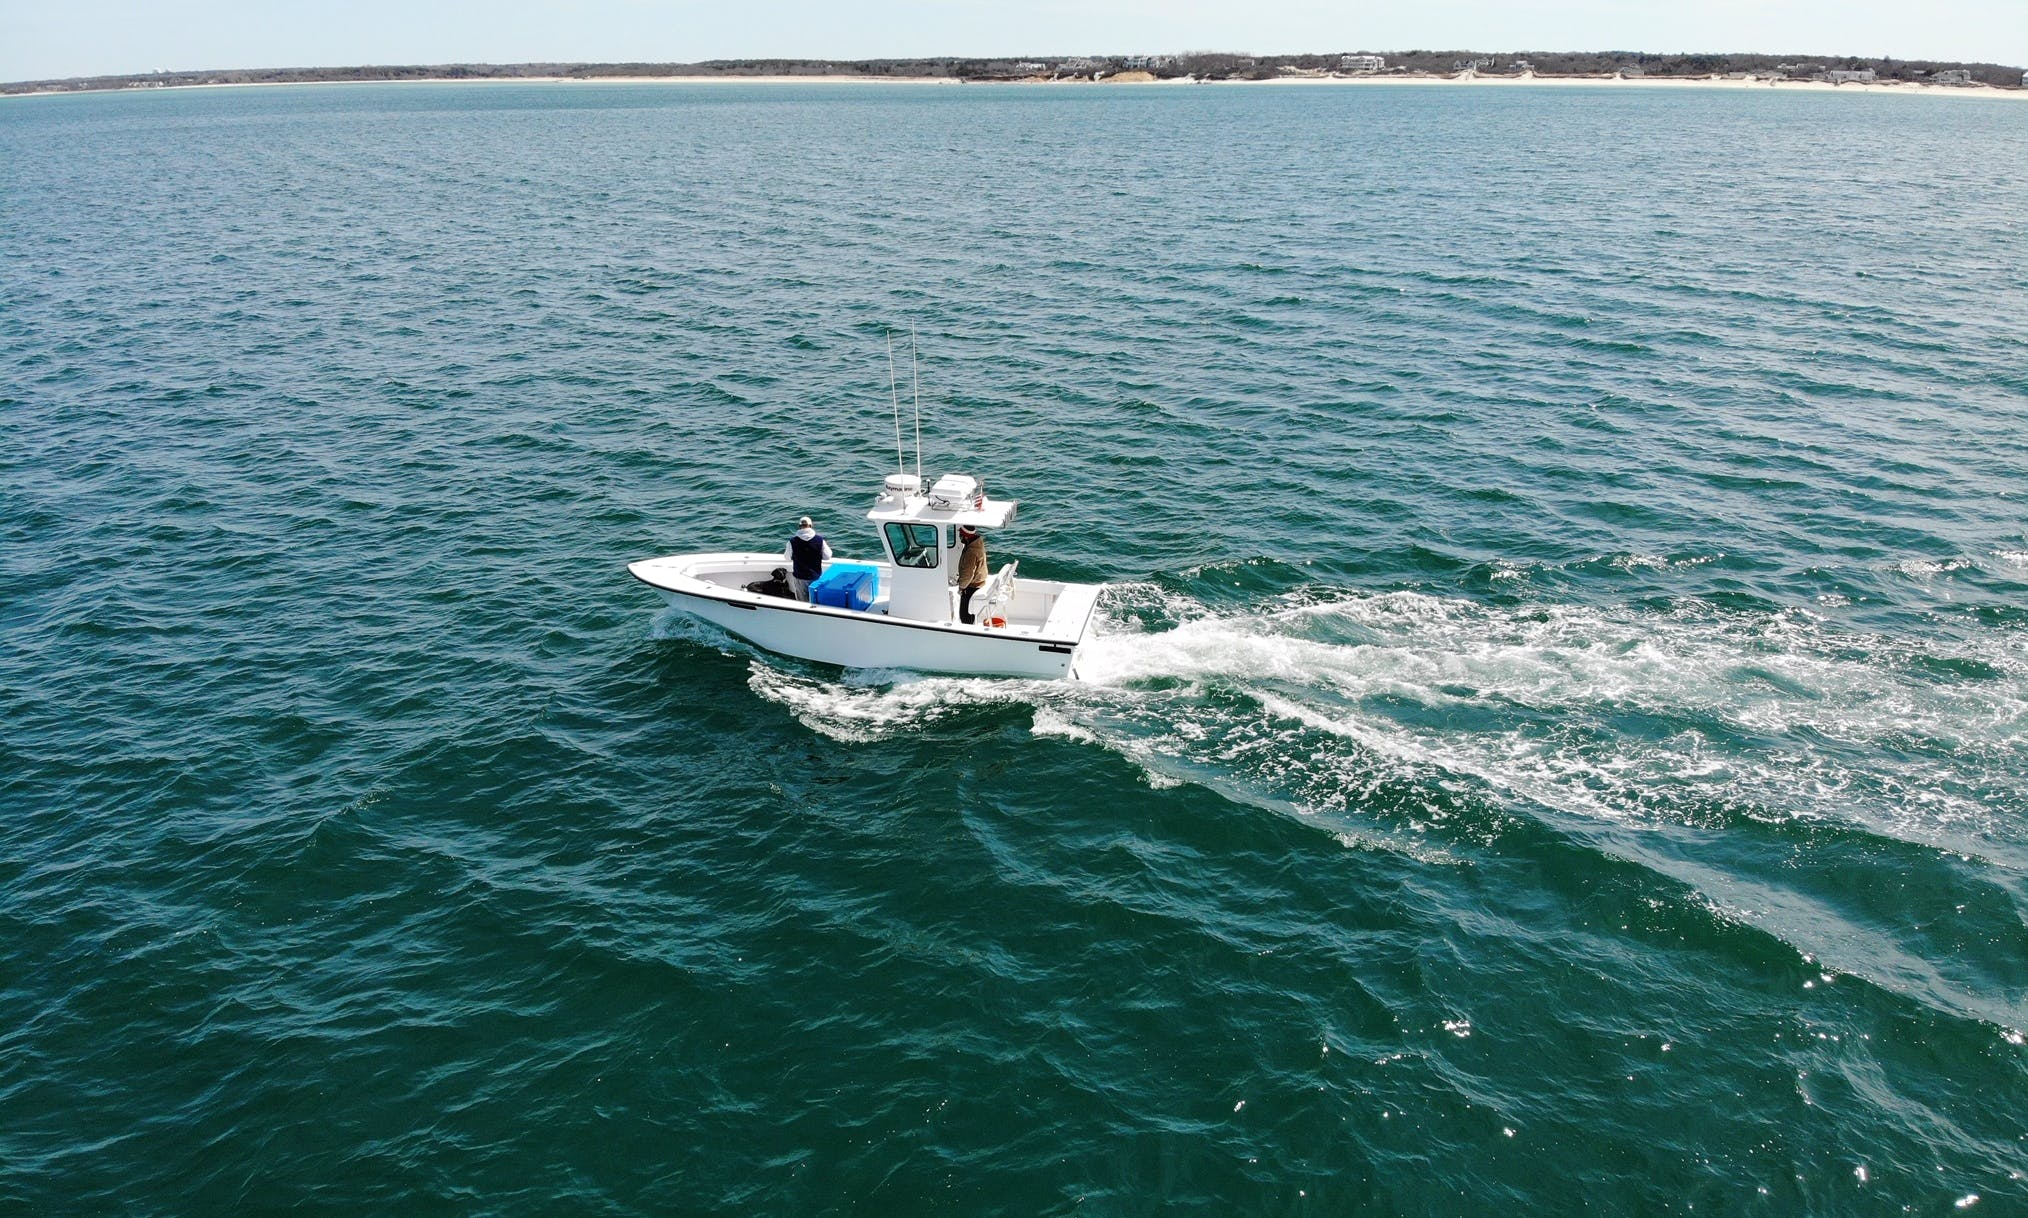 23 ft Fishing Boats Rental for 4 People in Barnstable, Massachusetts